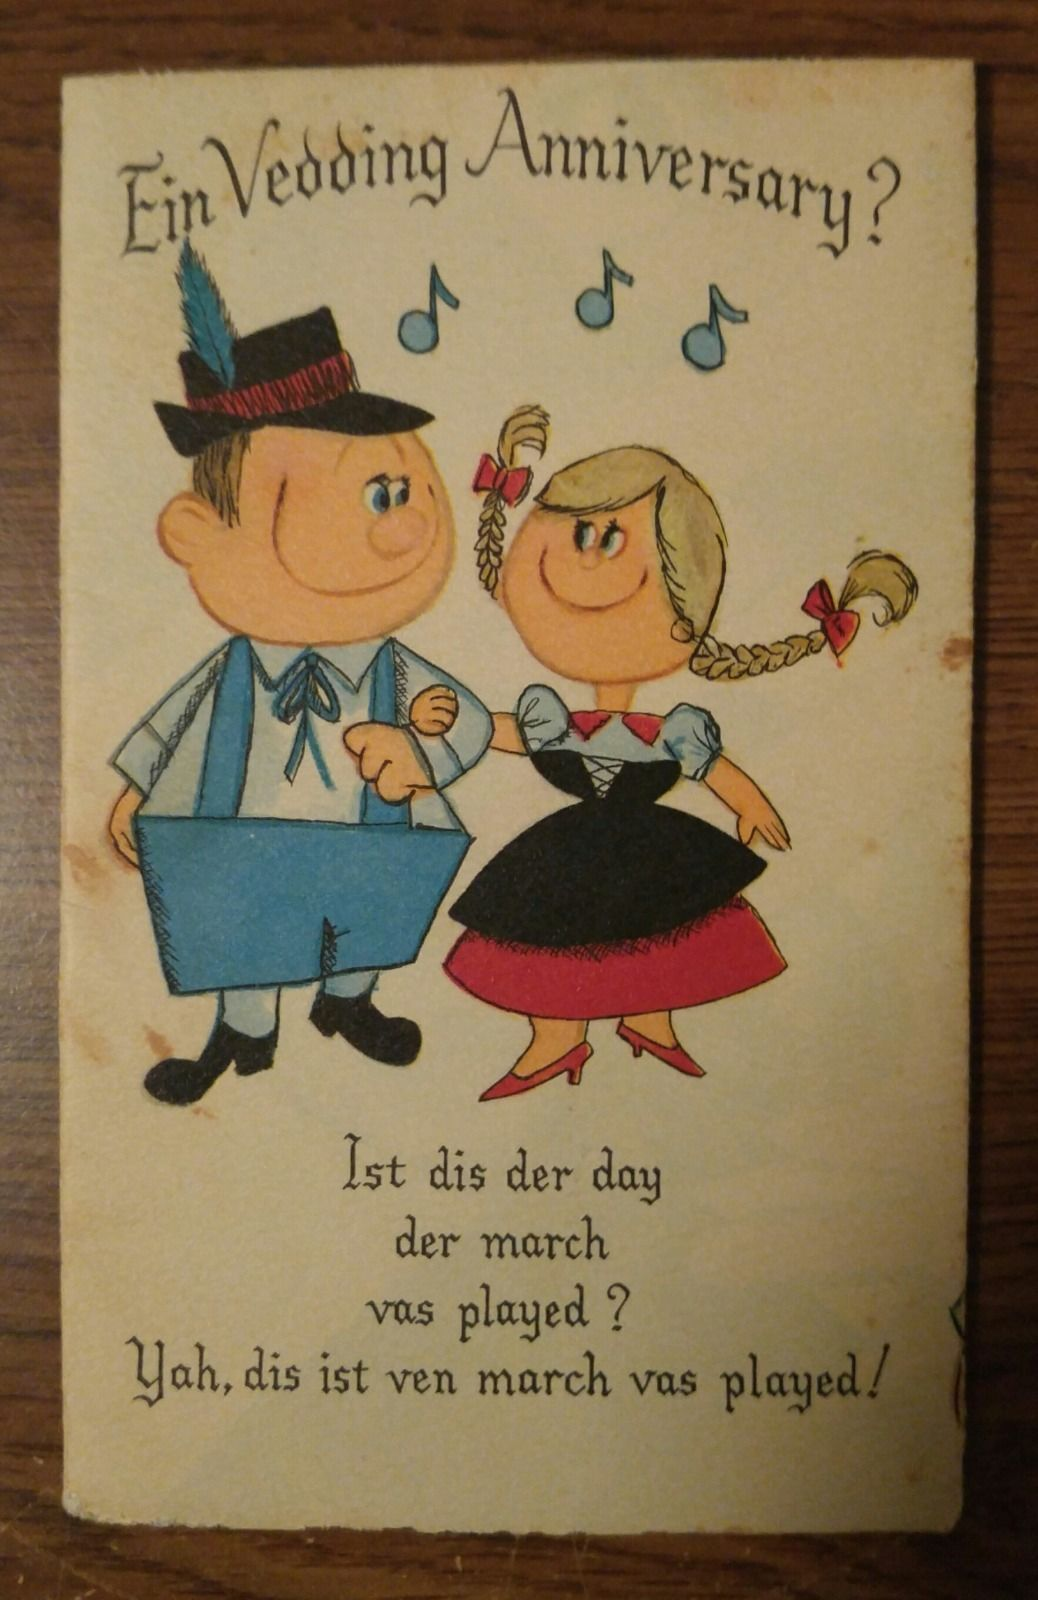 vintage, hallmark 1950's 60's german wedding anniversary card Wedding Greetings In German vintage, hallmark 1950's 60's german wedding anniversary card wedding greetings in german